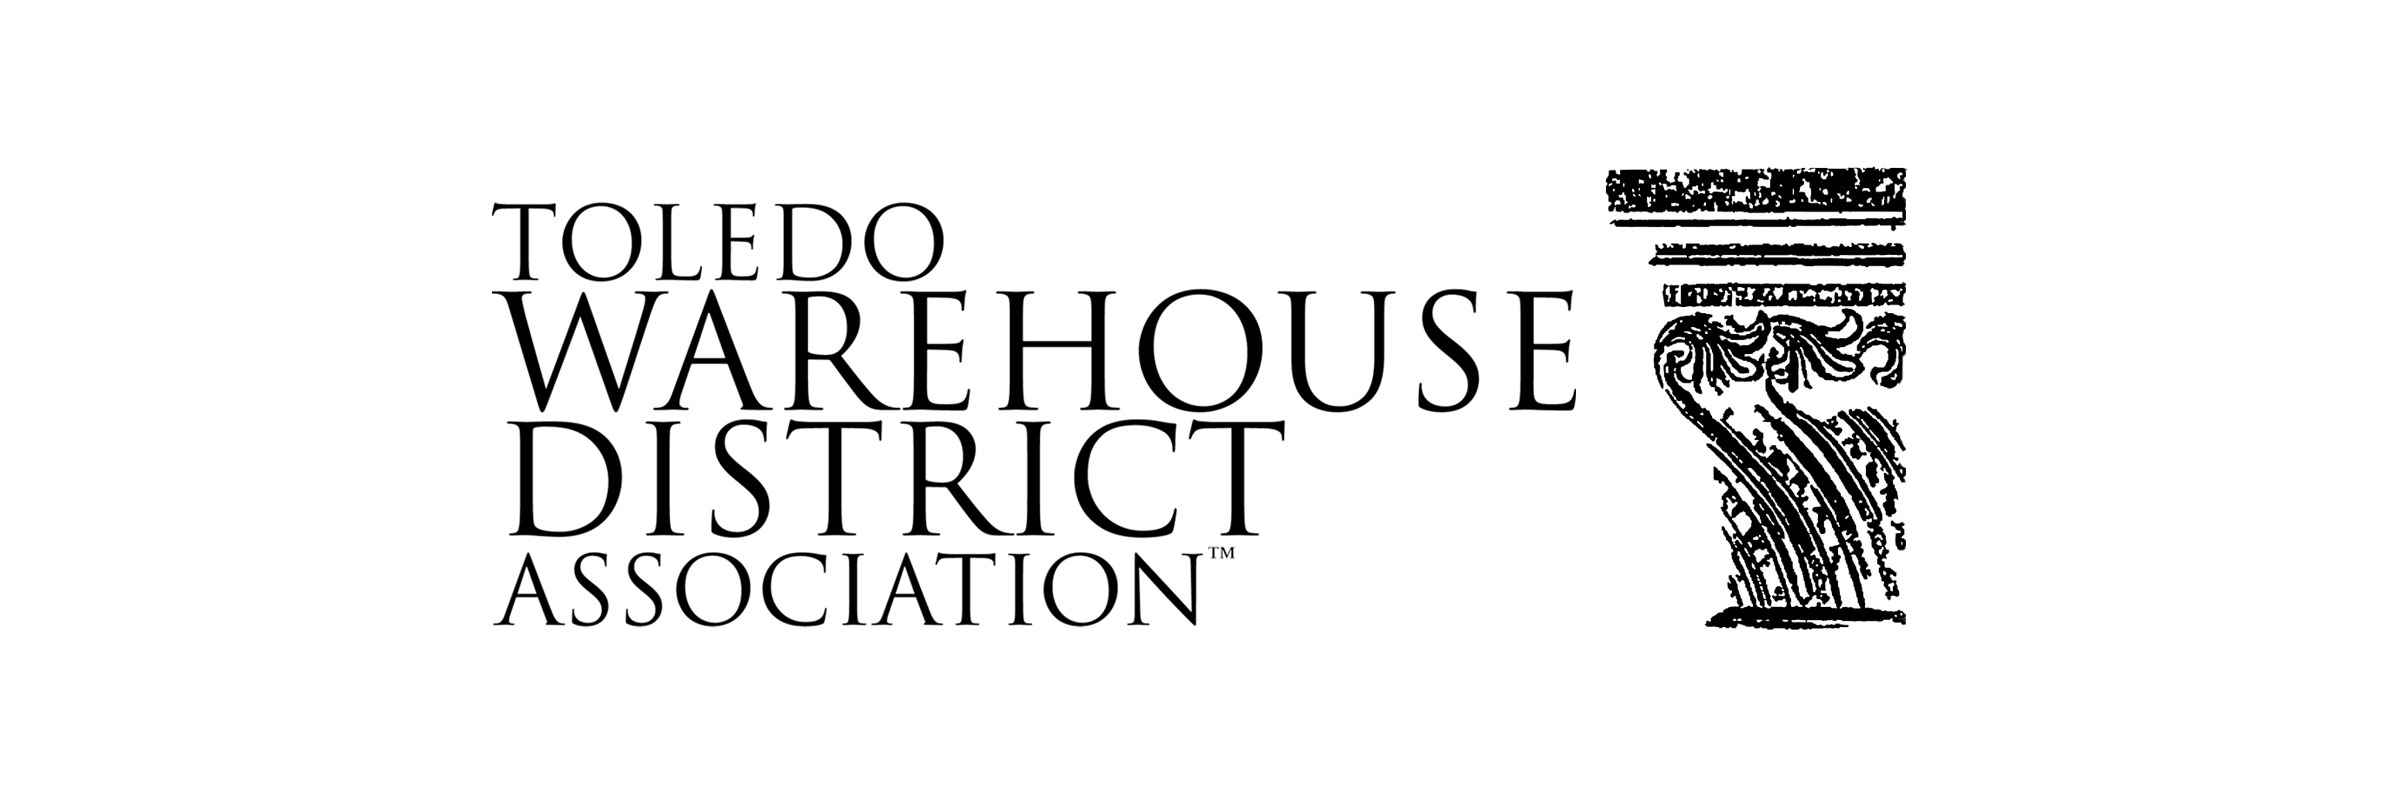 Toledo Warehouse District Association - Thrive Internet